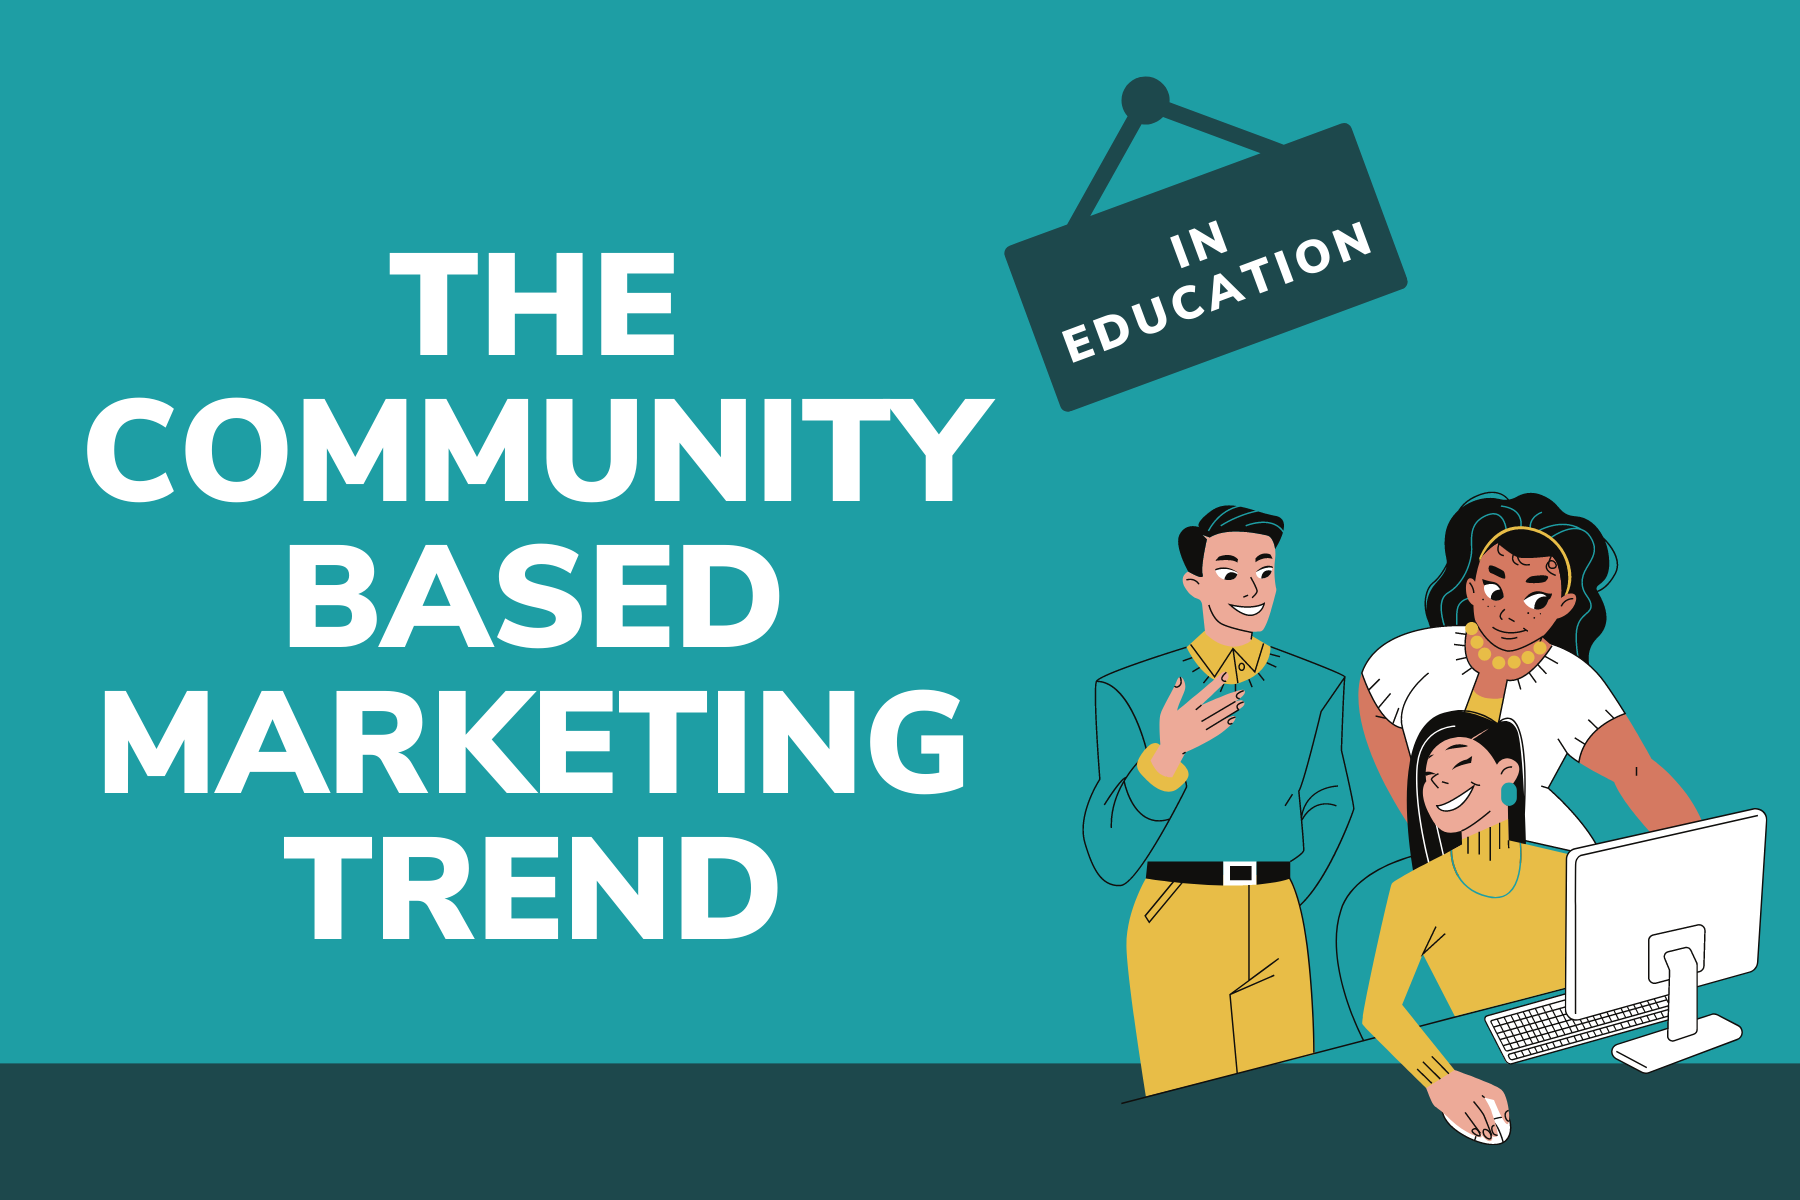 The Community Based Marketing Trend in Education